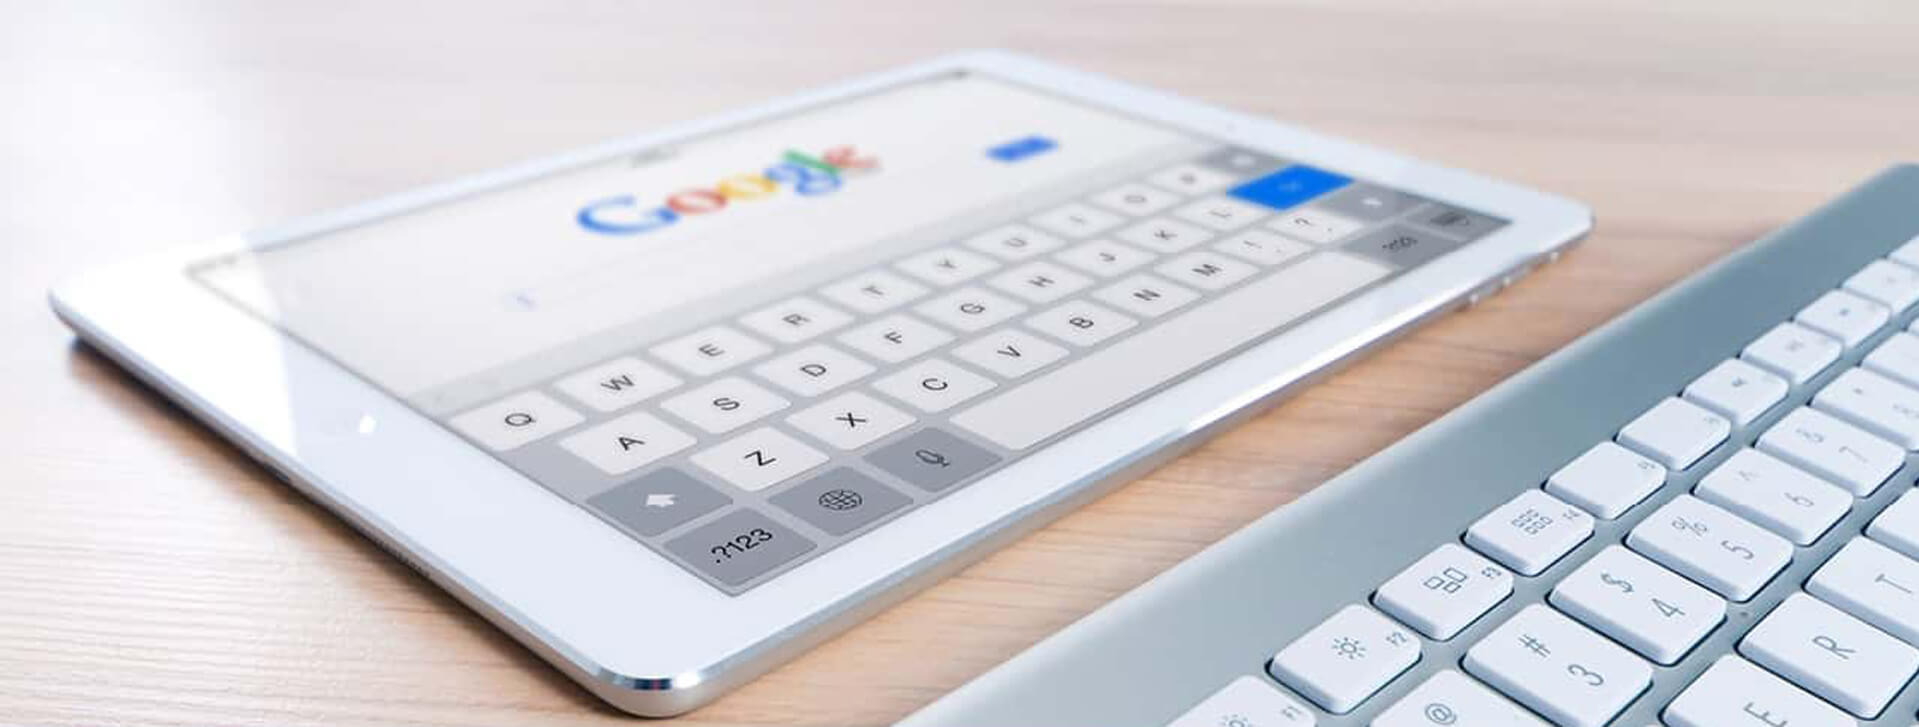 core google services your business should be using